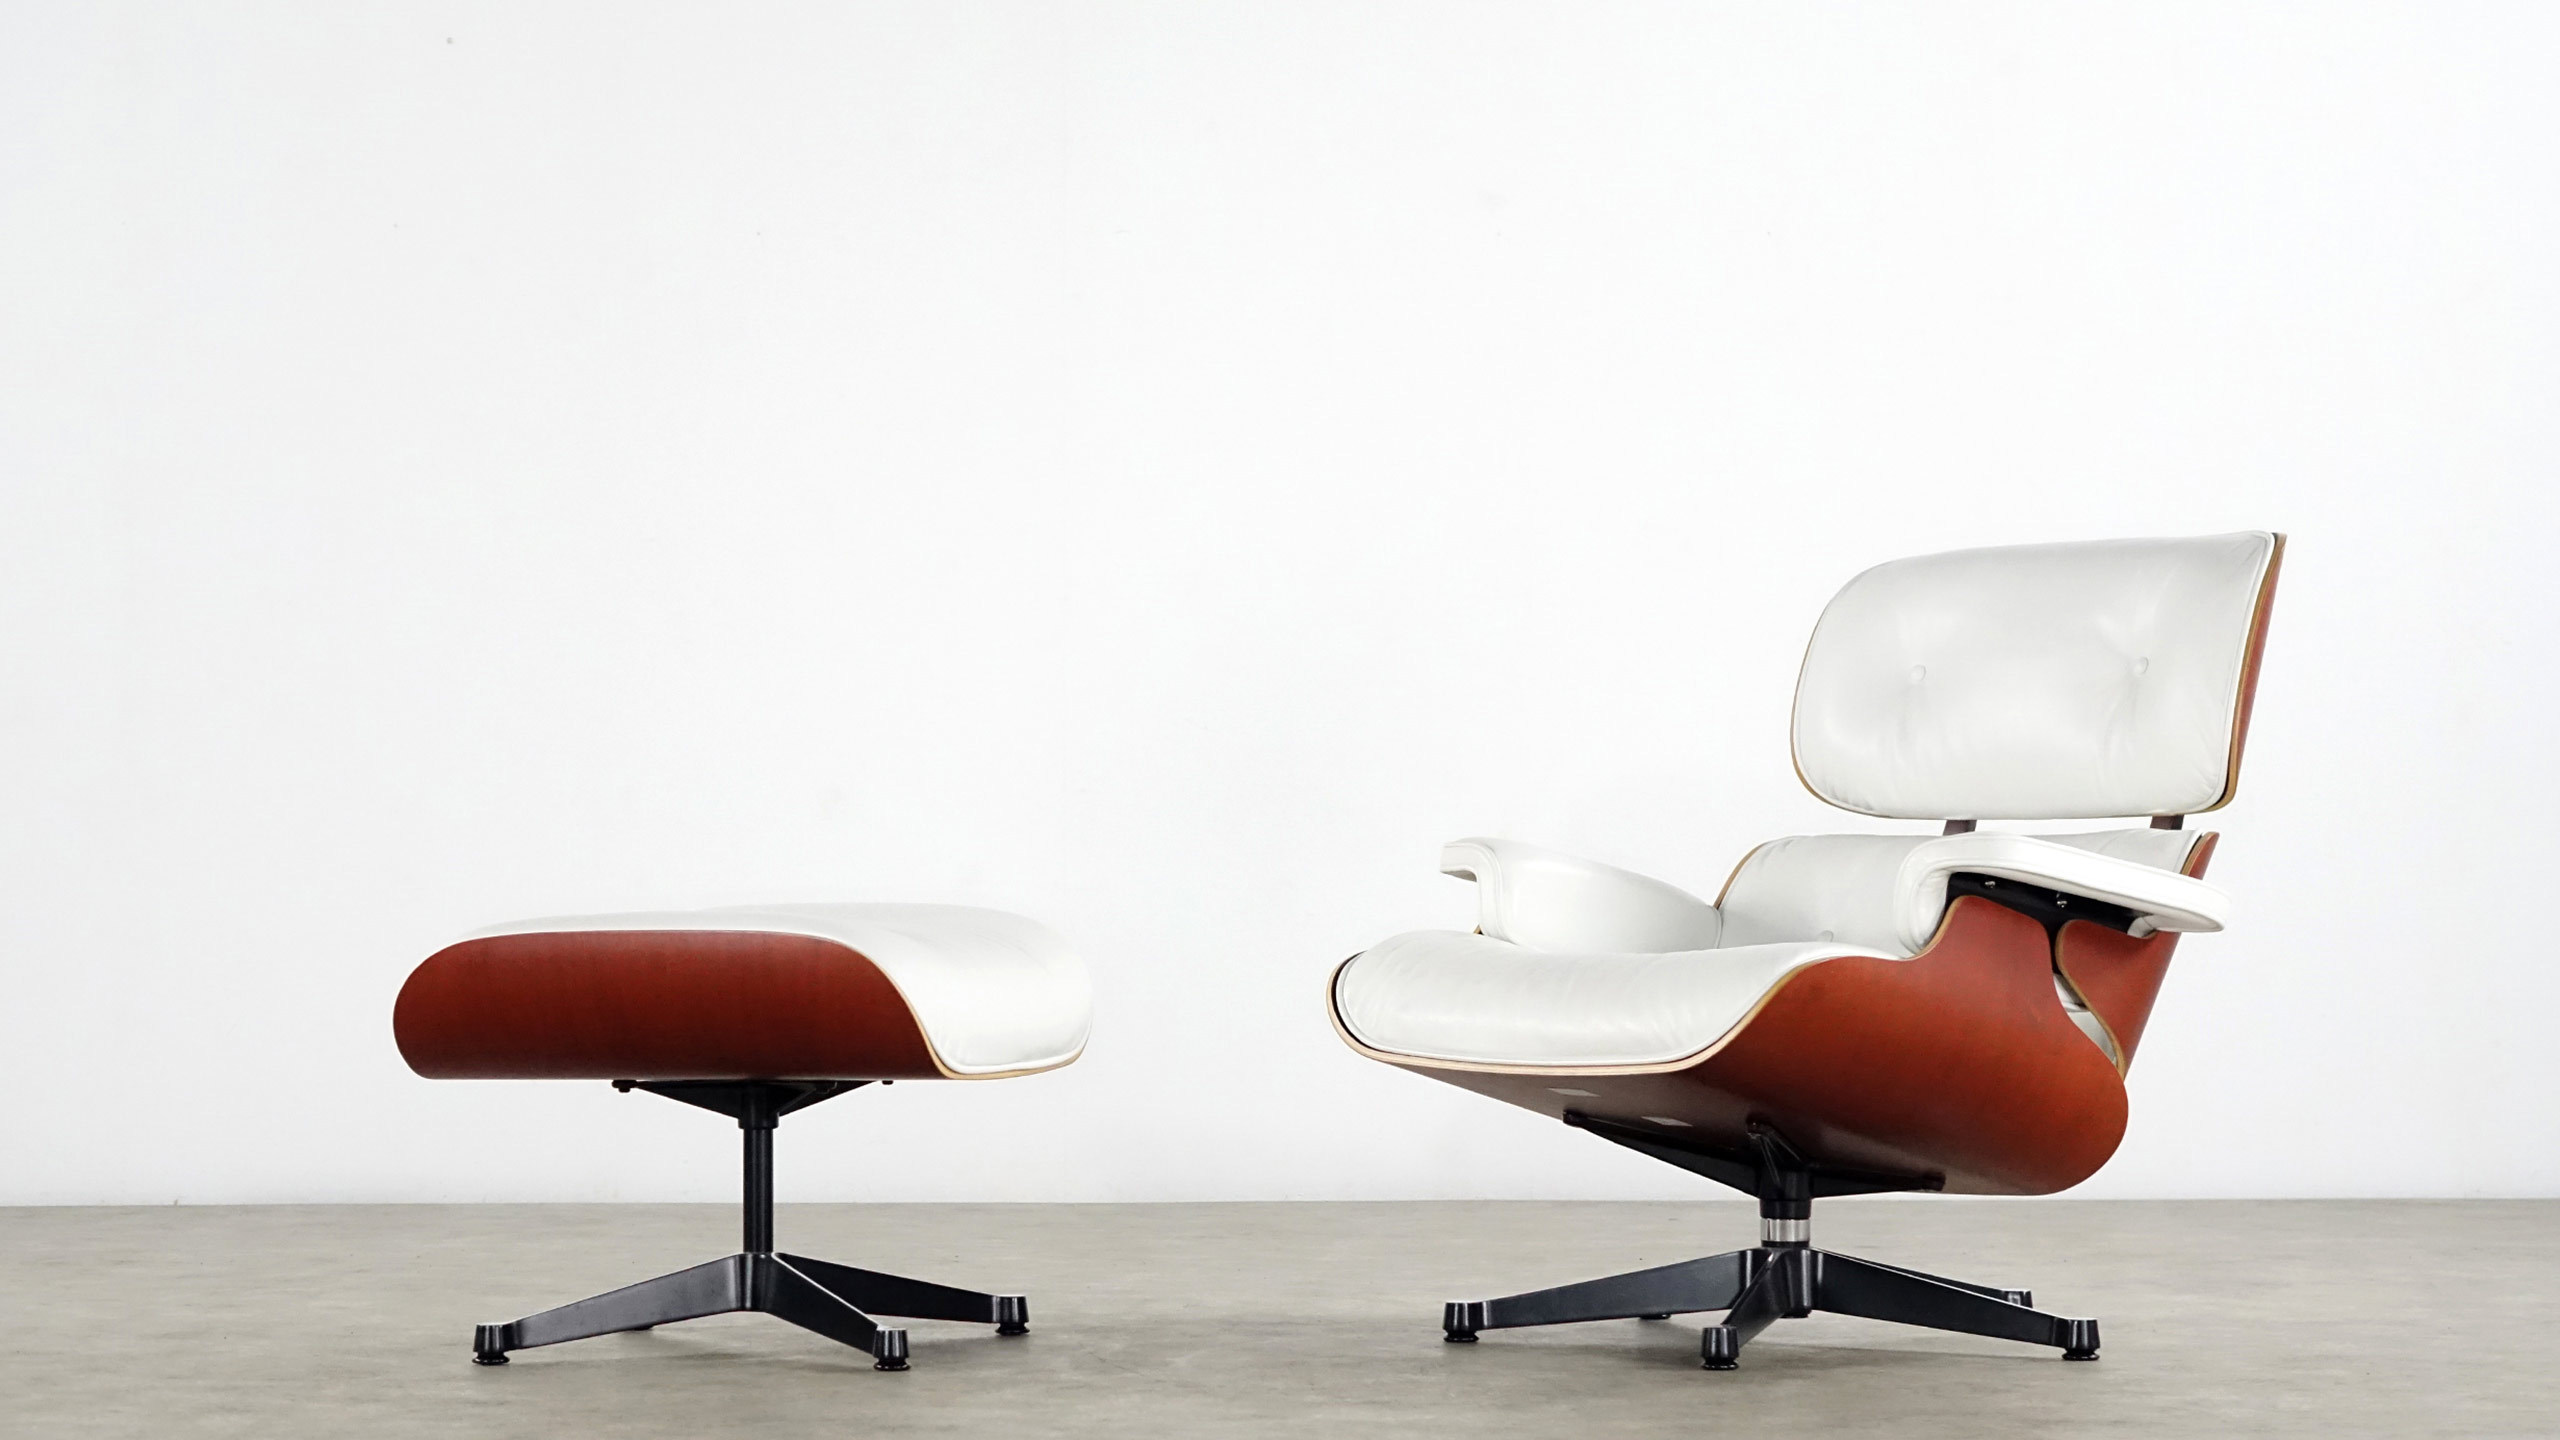 Charles eames lounge chair by vitra white leather for Charles eames lounge chair nachbildung